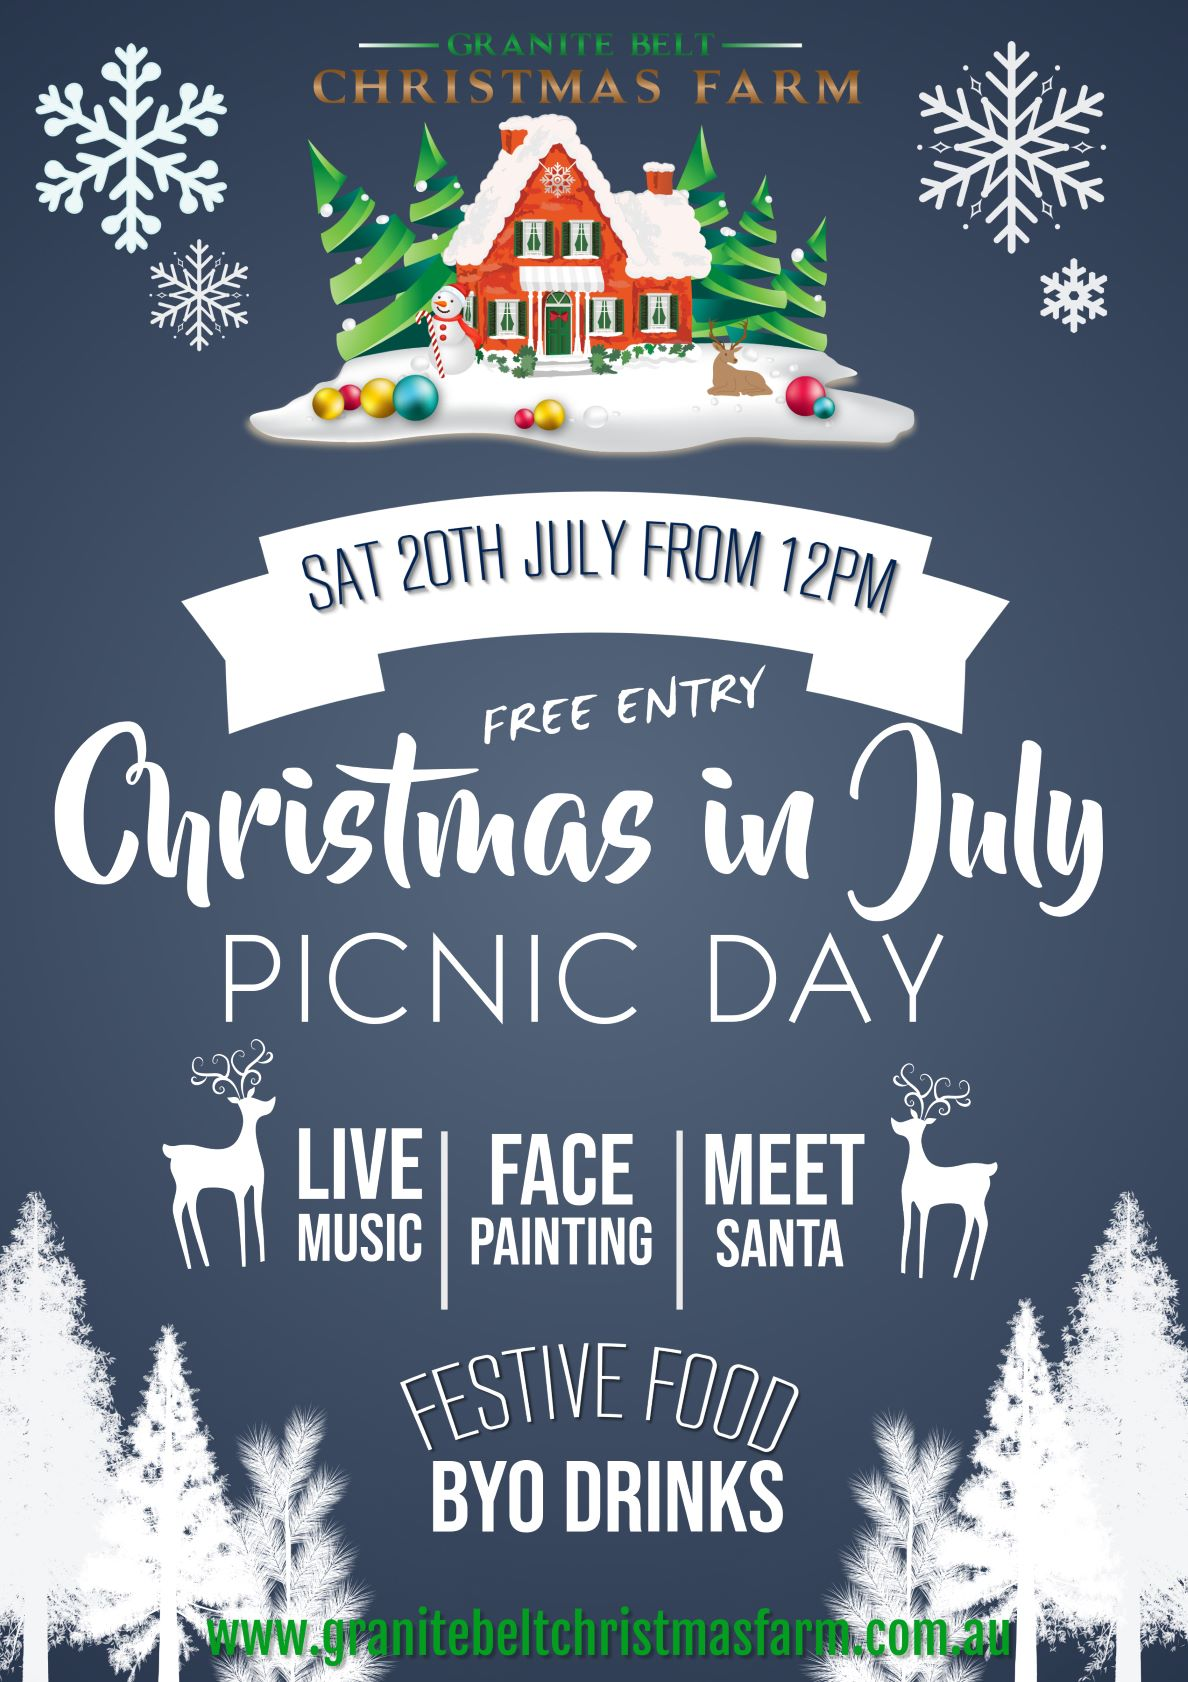 Christmas Day 2019.Christmas In July Picnic Day 2019 Web Granite Belt Christmas